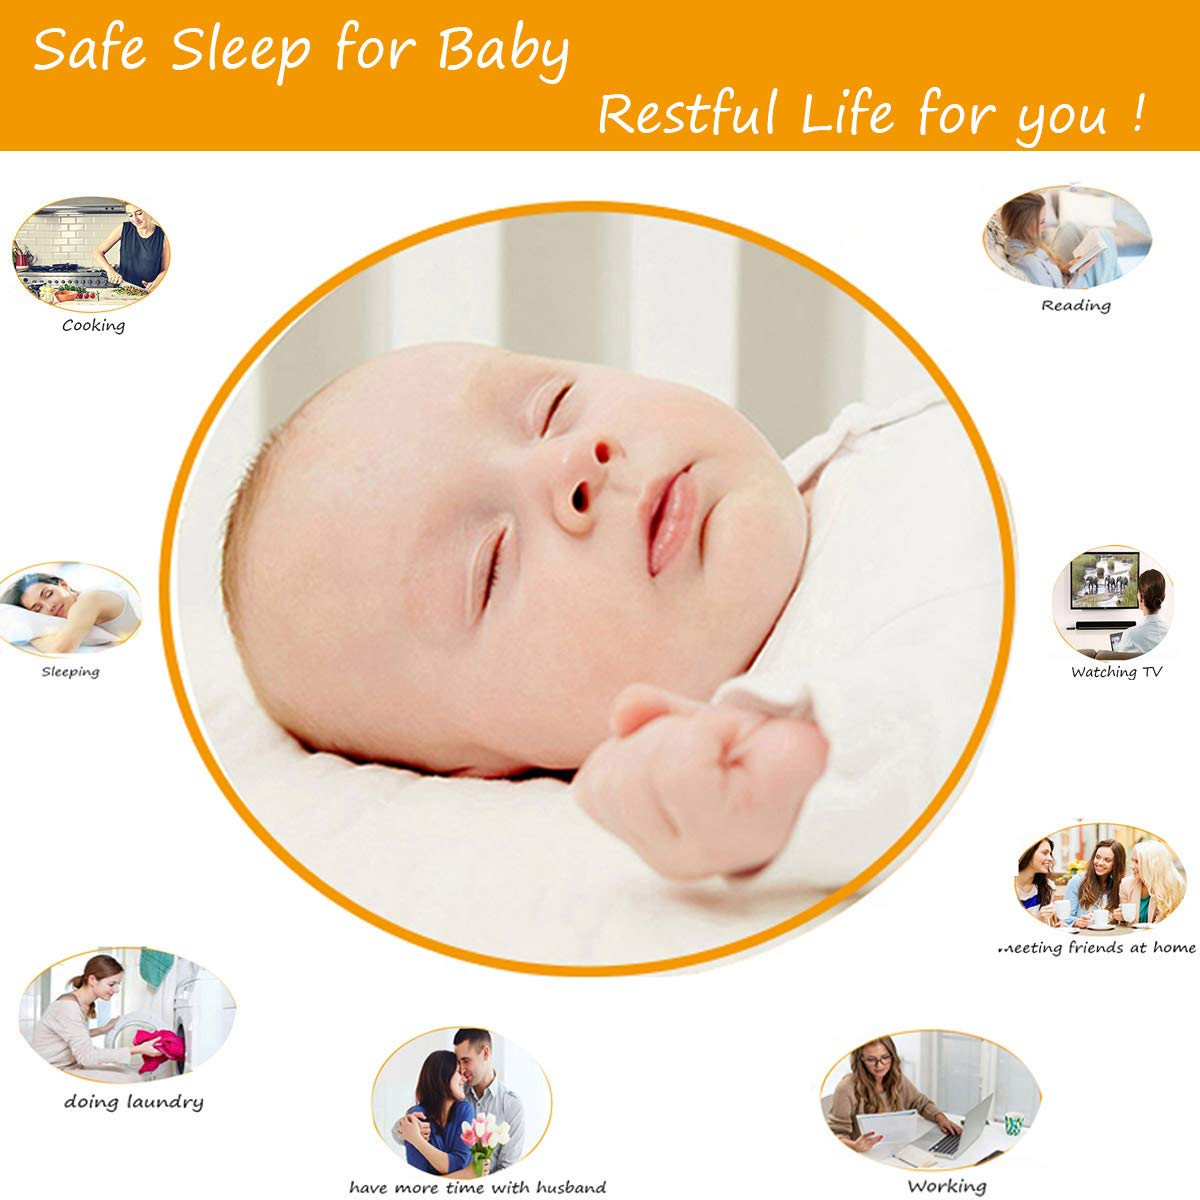 Baby Hammock for Crib Mimics Womb Newborn Bassinet Strong Material Upgraded Safety Measures Infant Nursery Travel Bed Reduce Environmental Risk Associated with Early Infancy Baby Shower Gift by SYITCUN (Image #3)